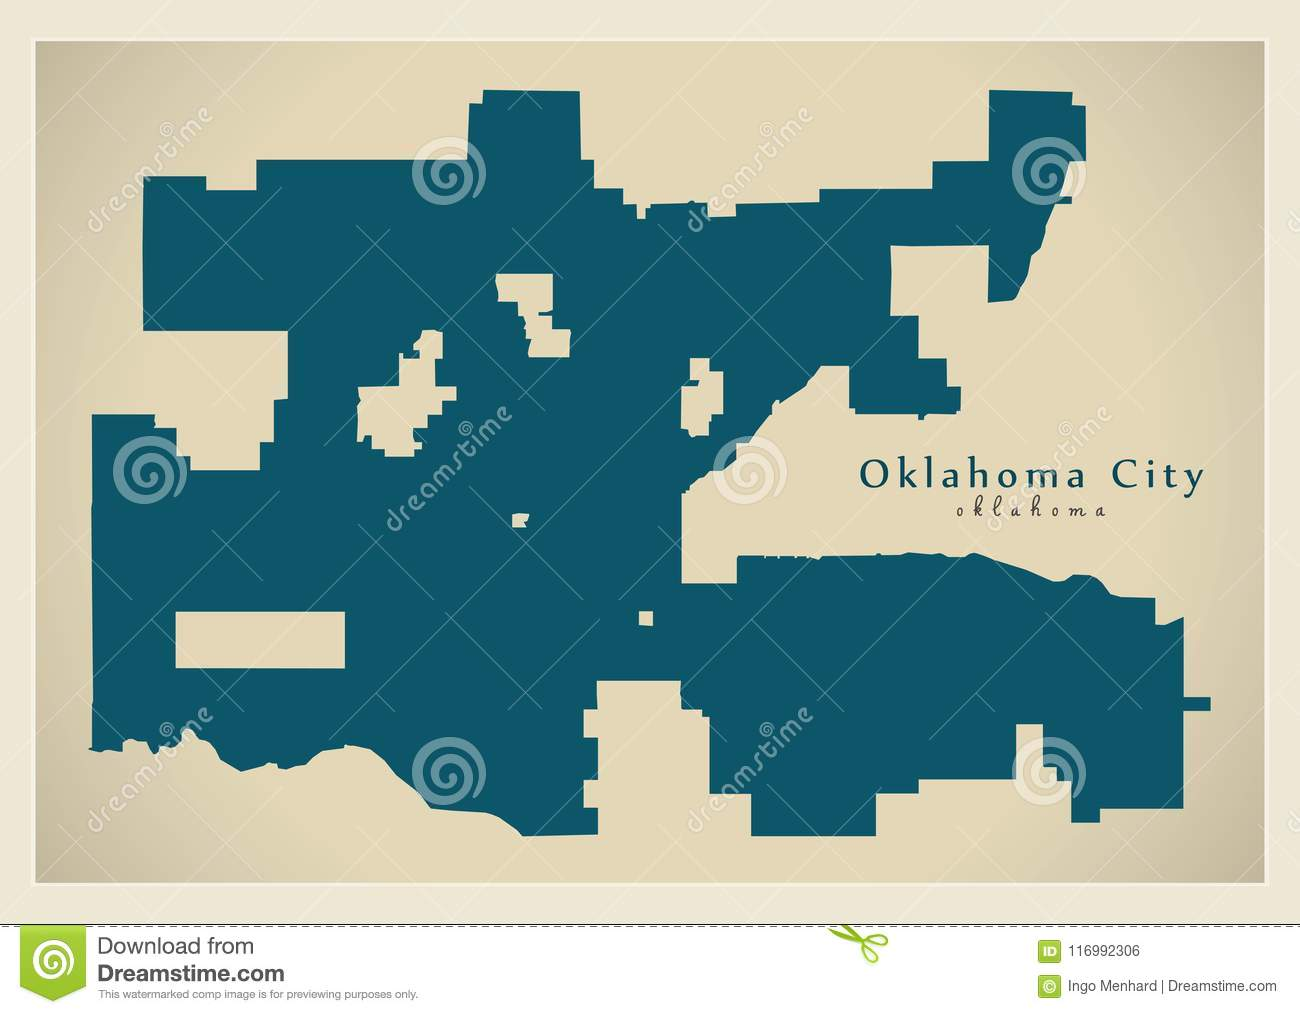 Modern City Map - Oklahoma City Of The USA Stock Vector ...